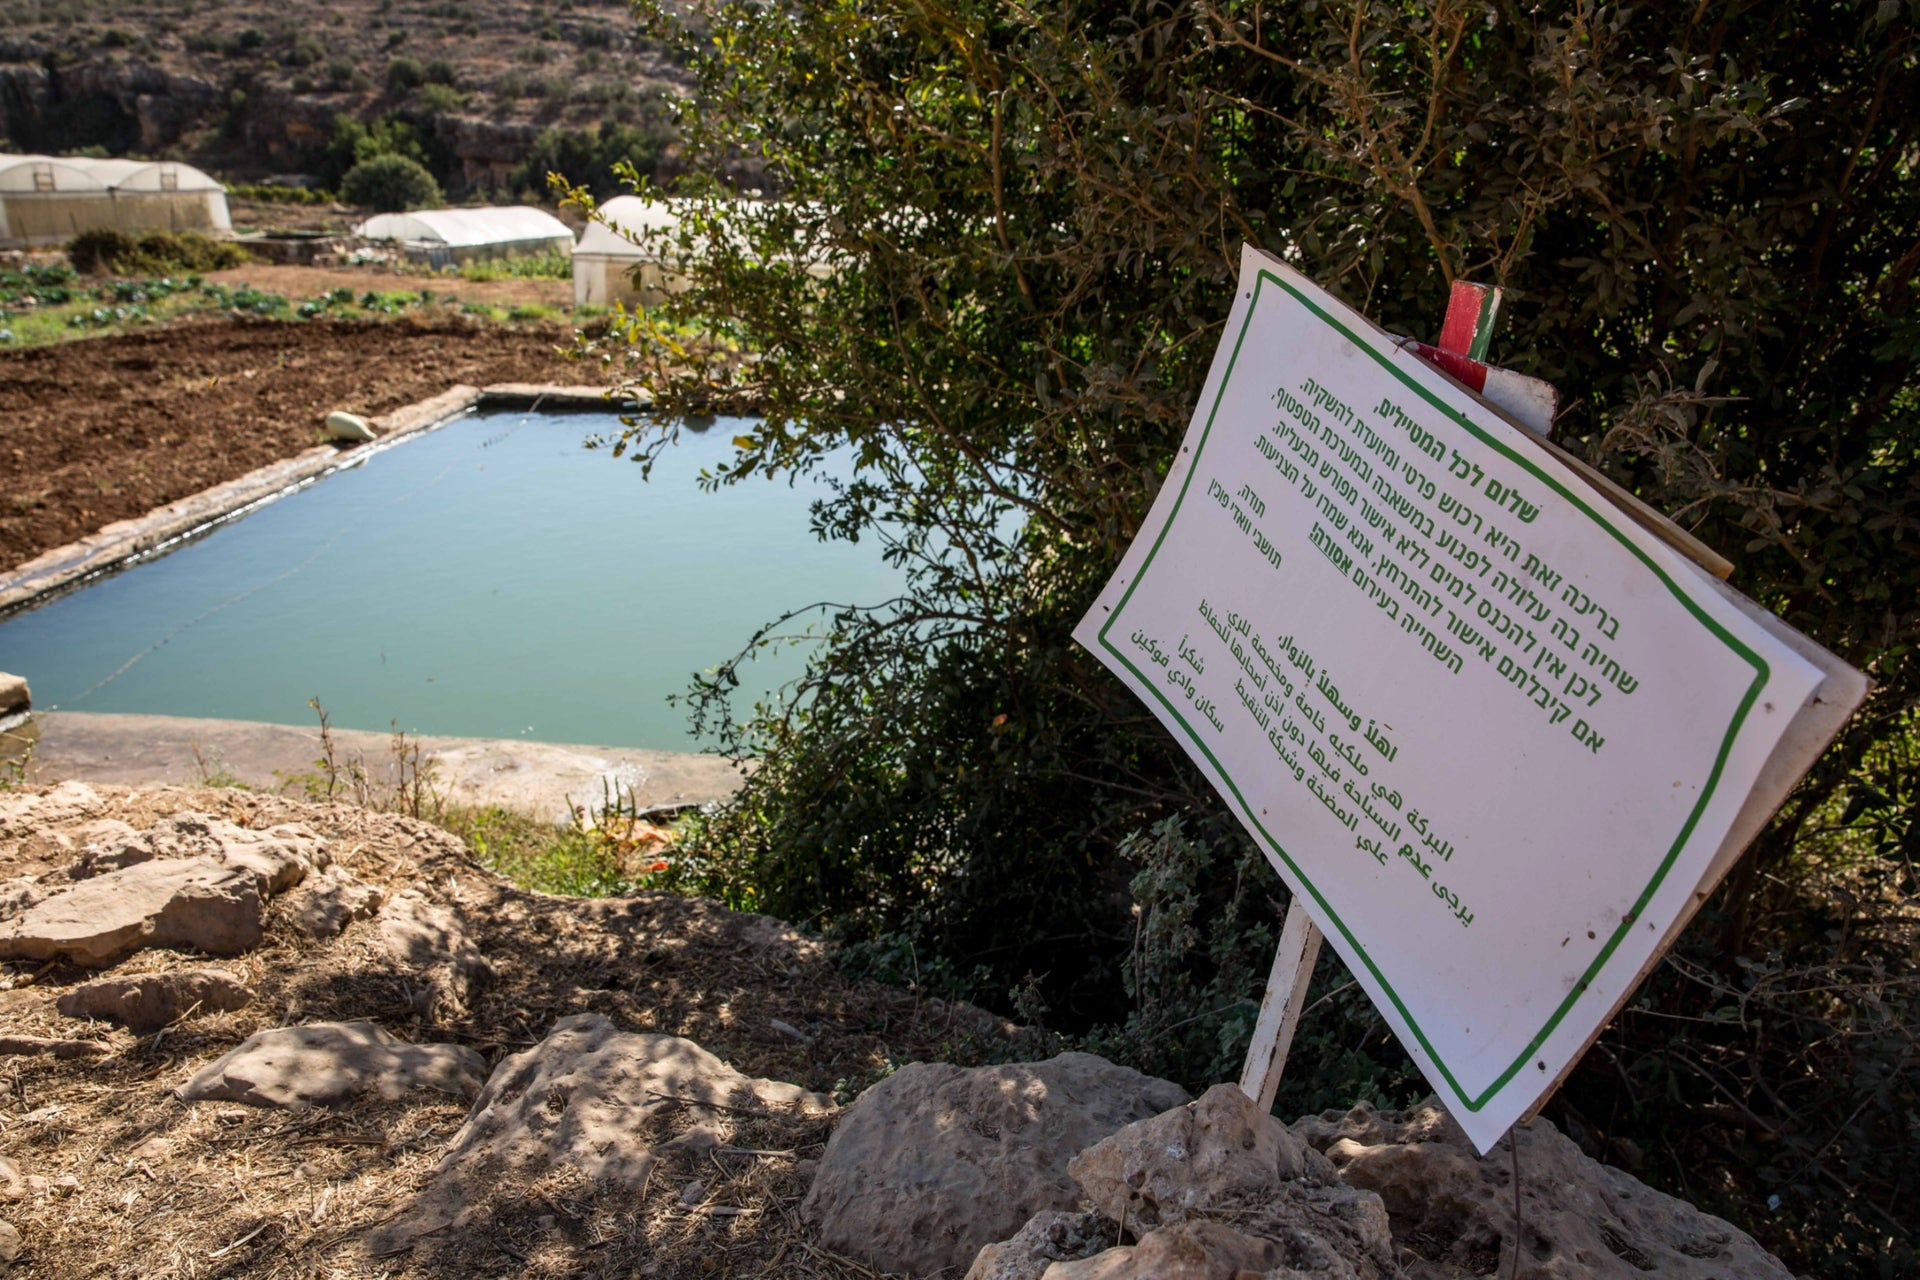 A sign placed near a pool in the Palestinian village of Wadi Fukin informs hikers they are on private land.